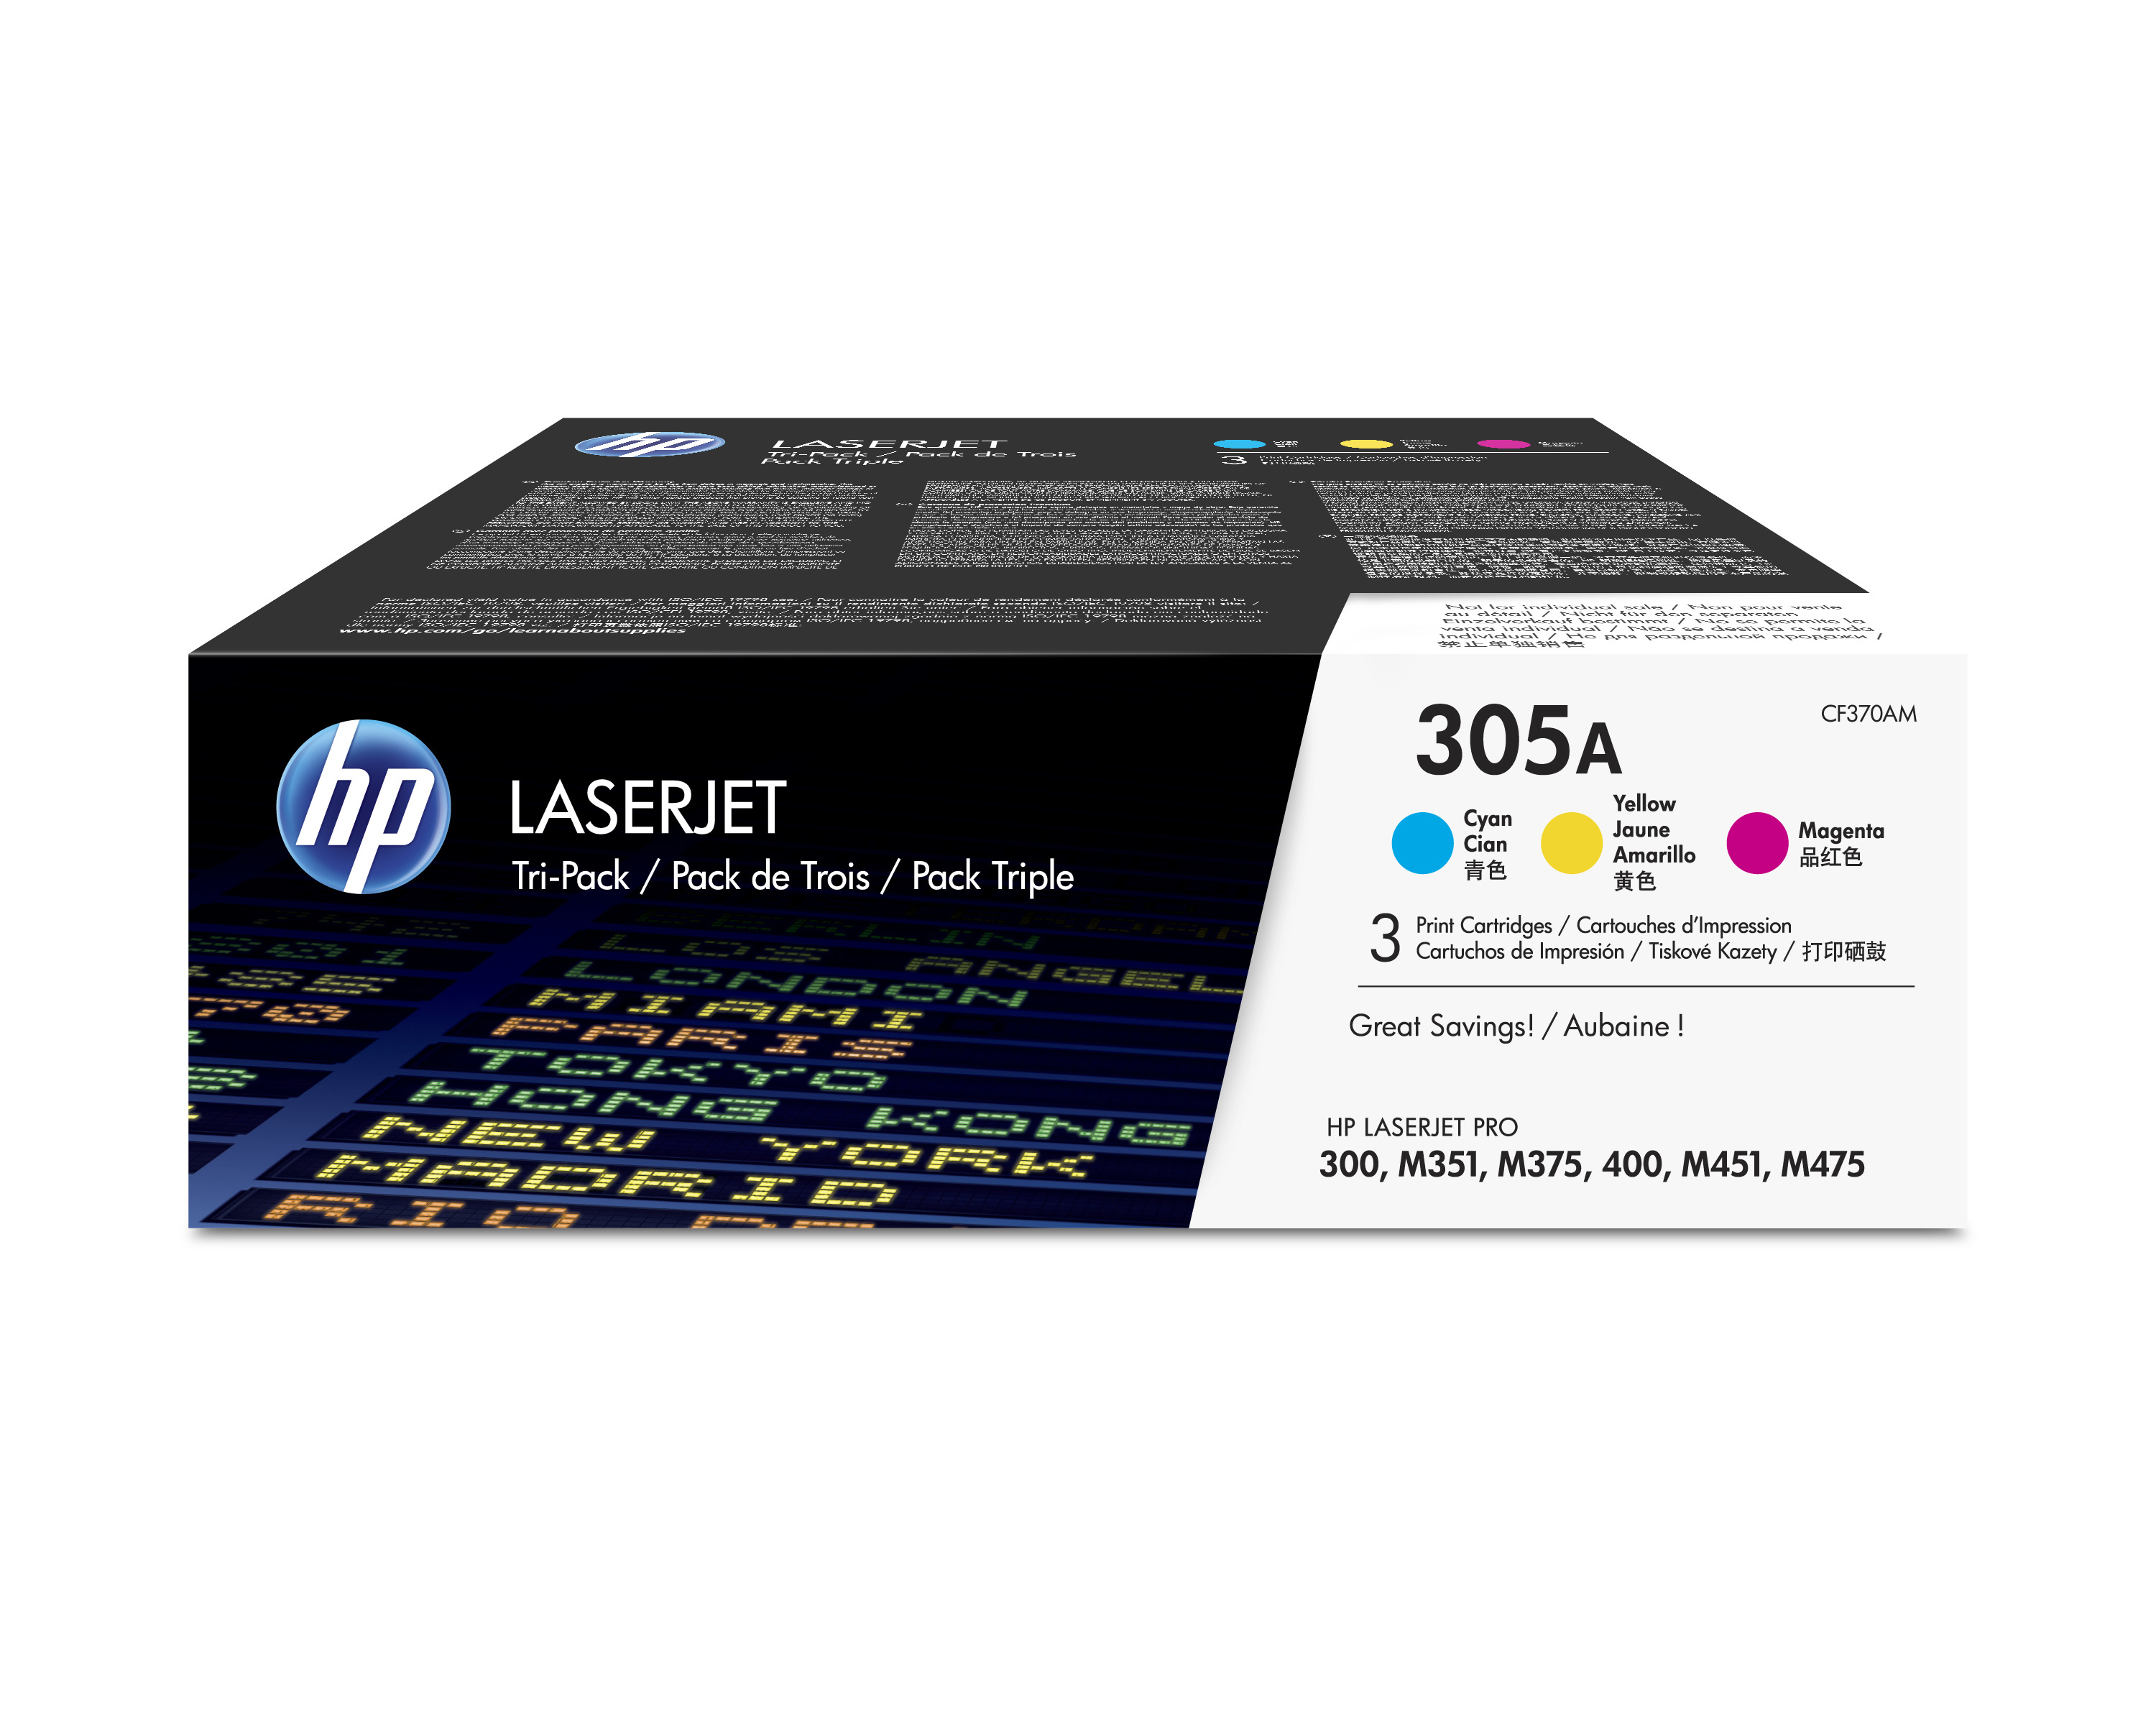 Hpcf370am      Hp 305a Multi Pack             Cyan Magenta And Yellow Toner                                - UF01